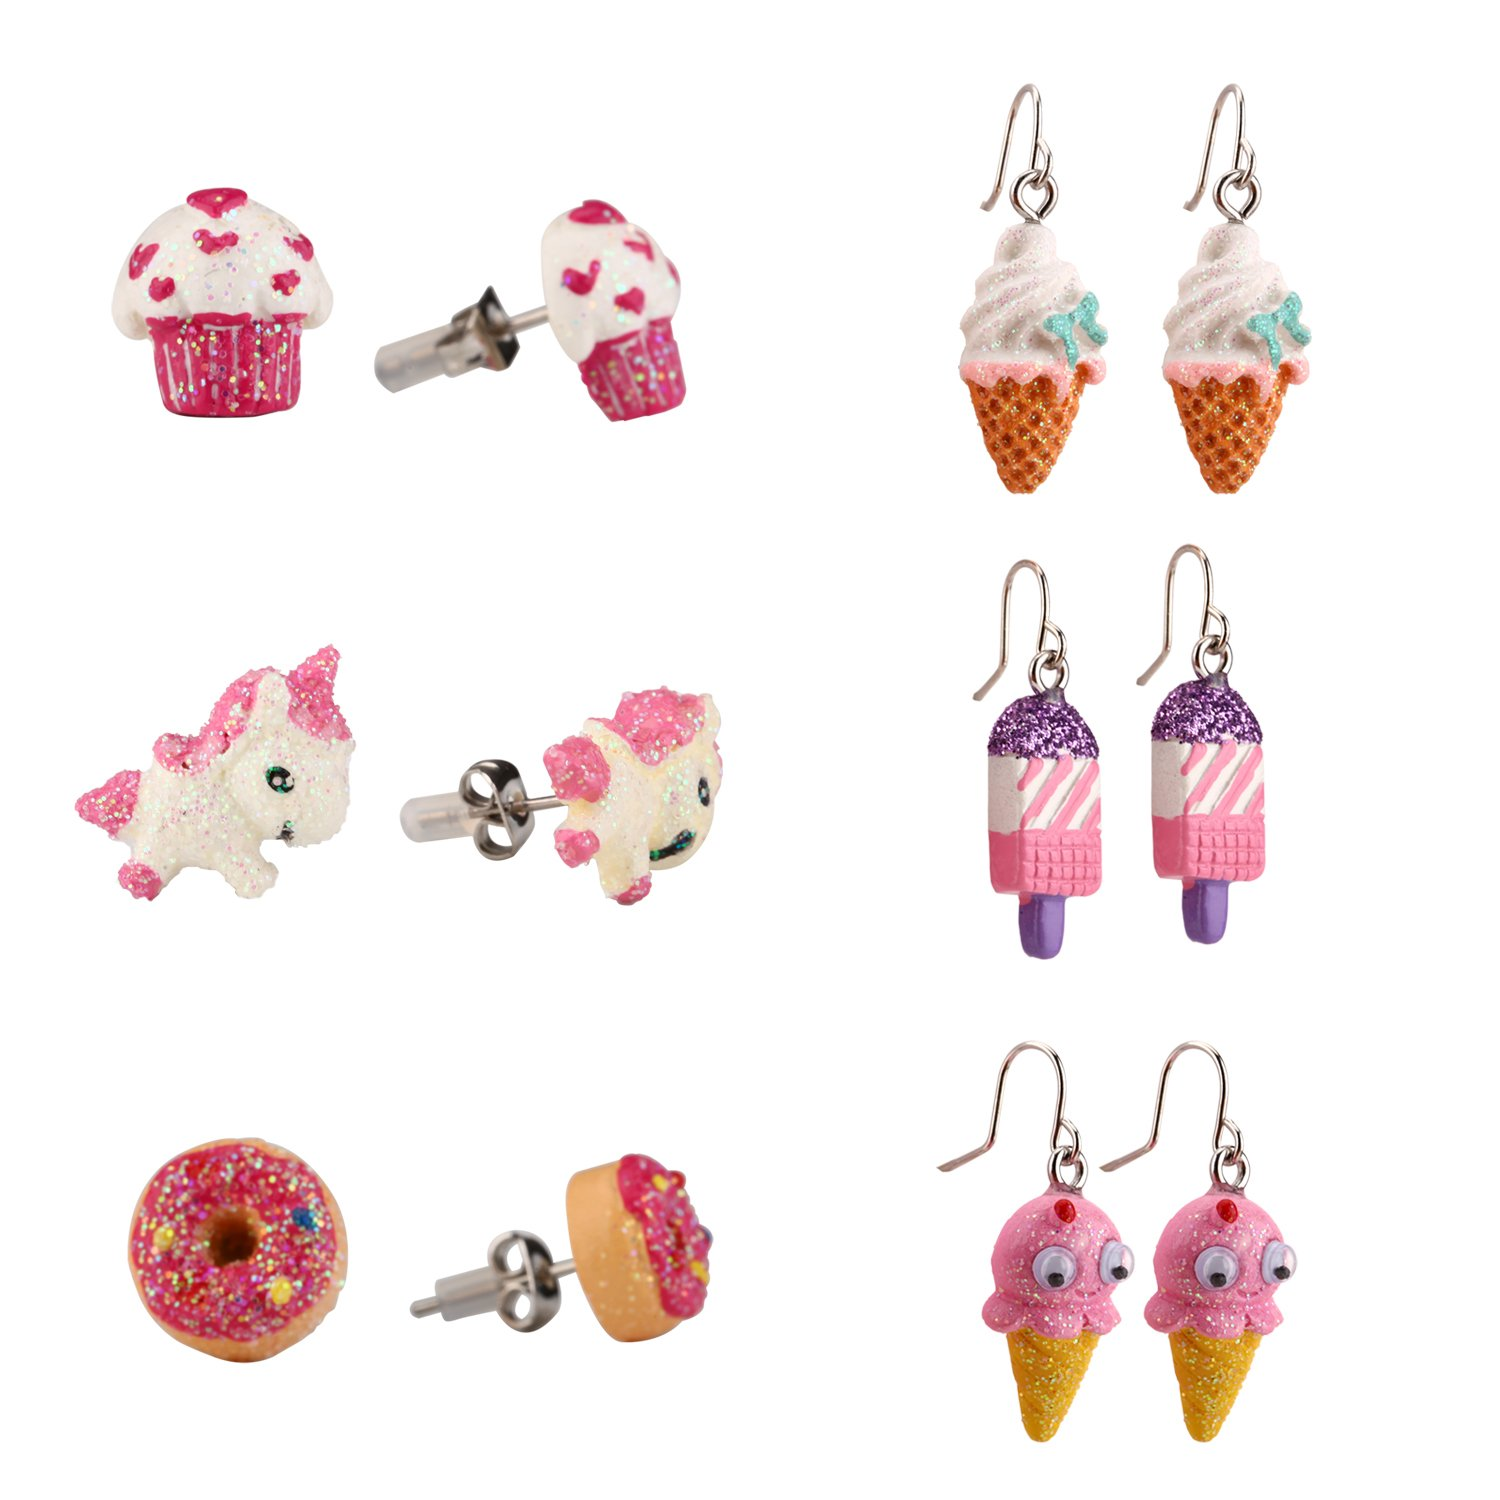 Hypoallergenic Pendant Earring Stud Earring Set for Kids, Cute ice cream Swing Pendant Earrings Little Girls Gifts Skywisewin